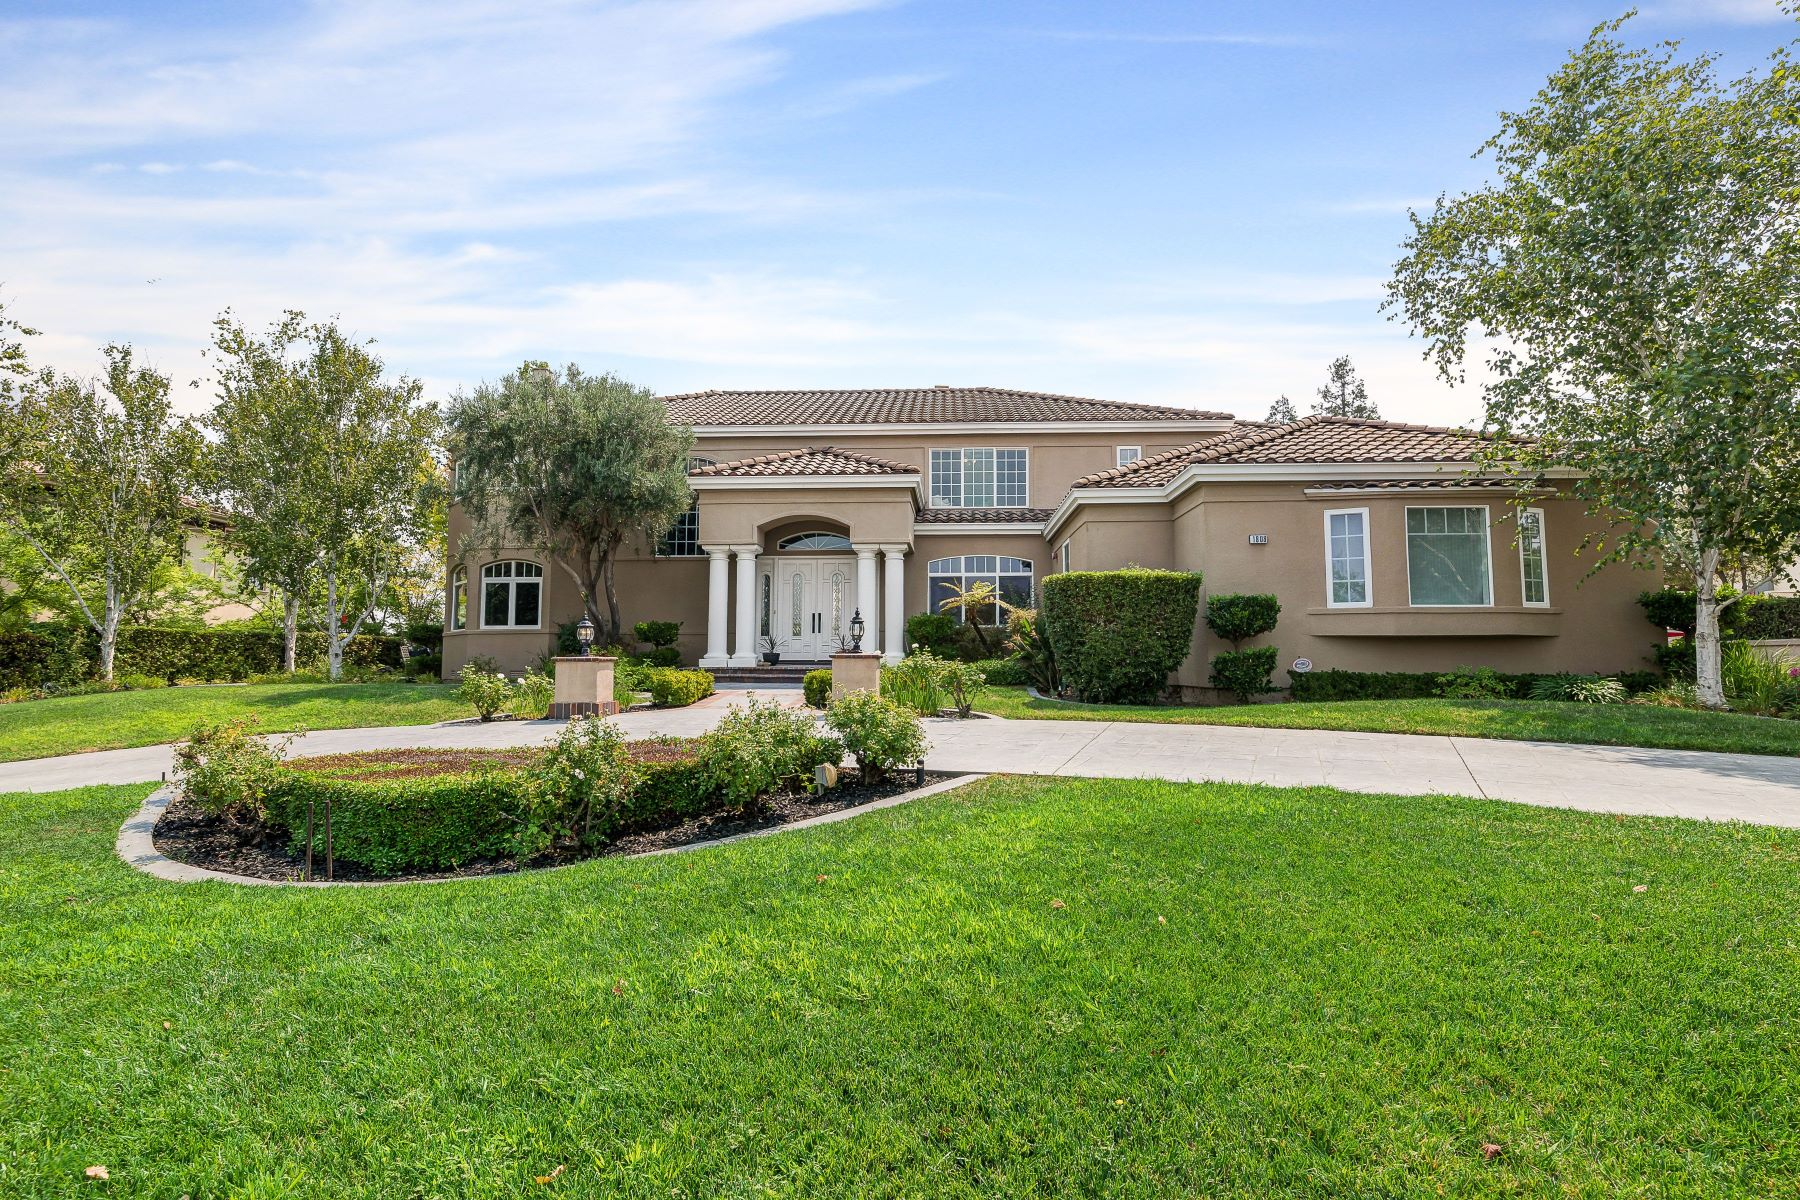 Single Family Homes for Active at 1808 Zenato Place, Pleasanton, CA 94566 1808 Zenato Place Pleasanton, California 94566 United States